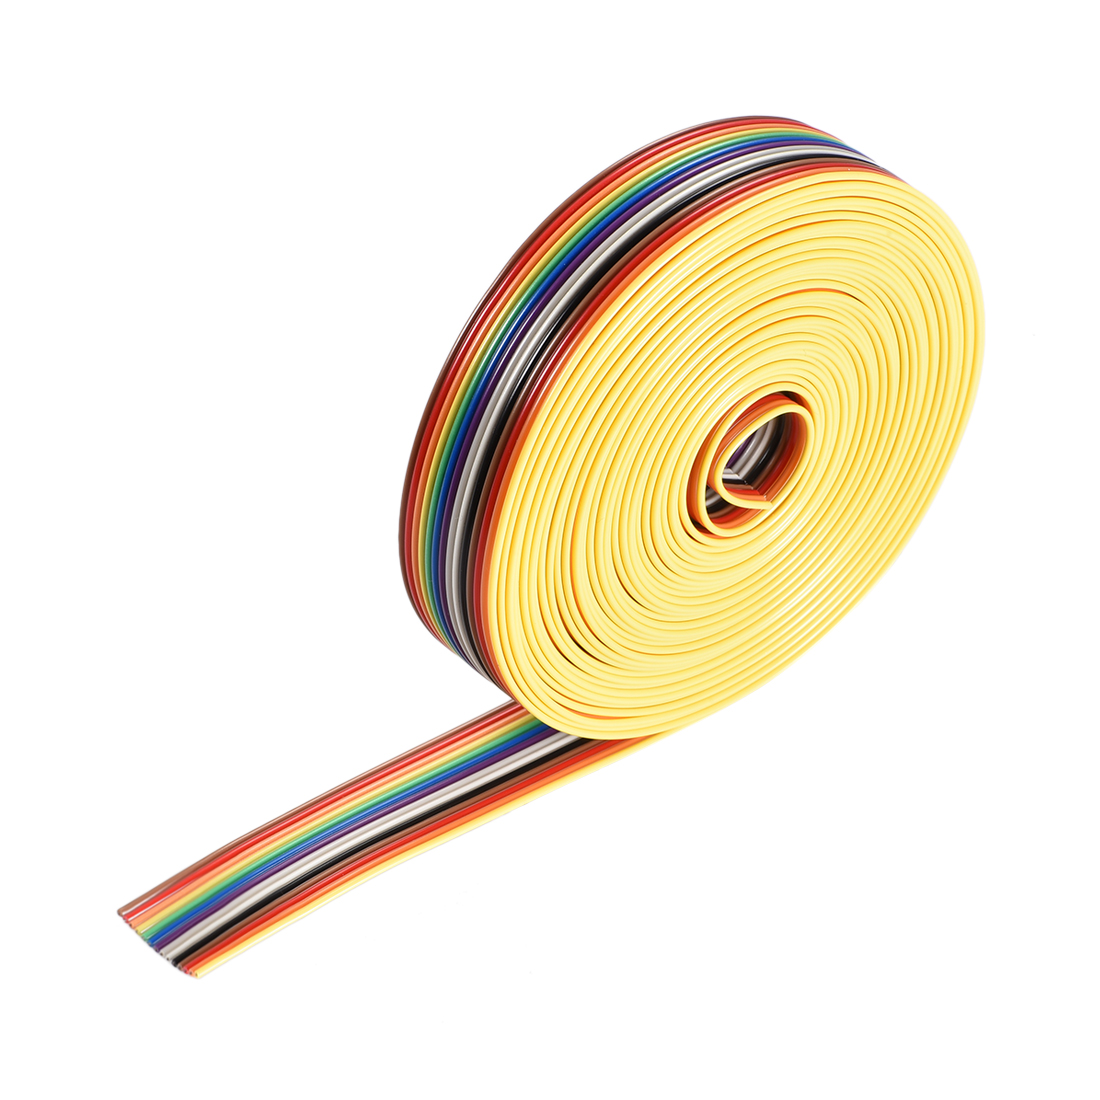 IDC Rainbow Wire Flat Ribbon Cable 14P 1.27mm Pitch 5meter/16.4ft Length